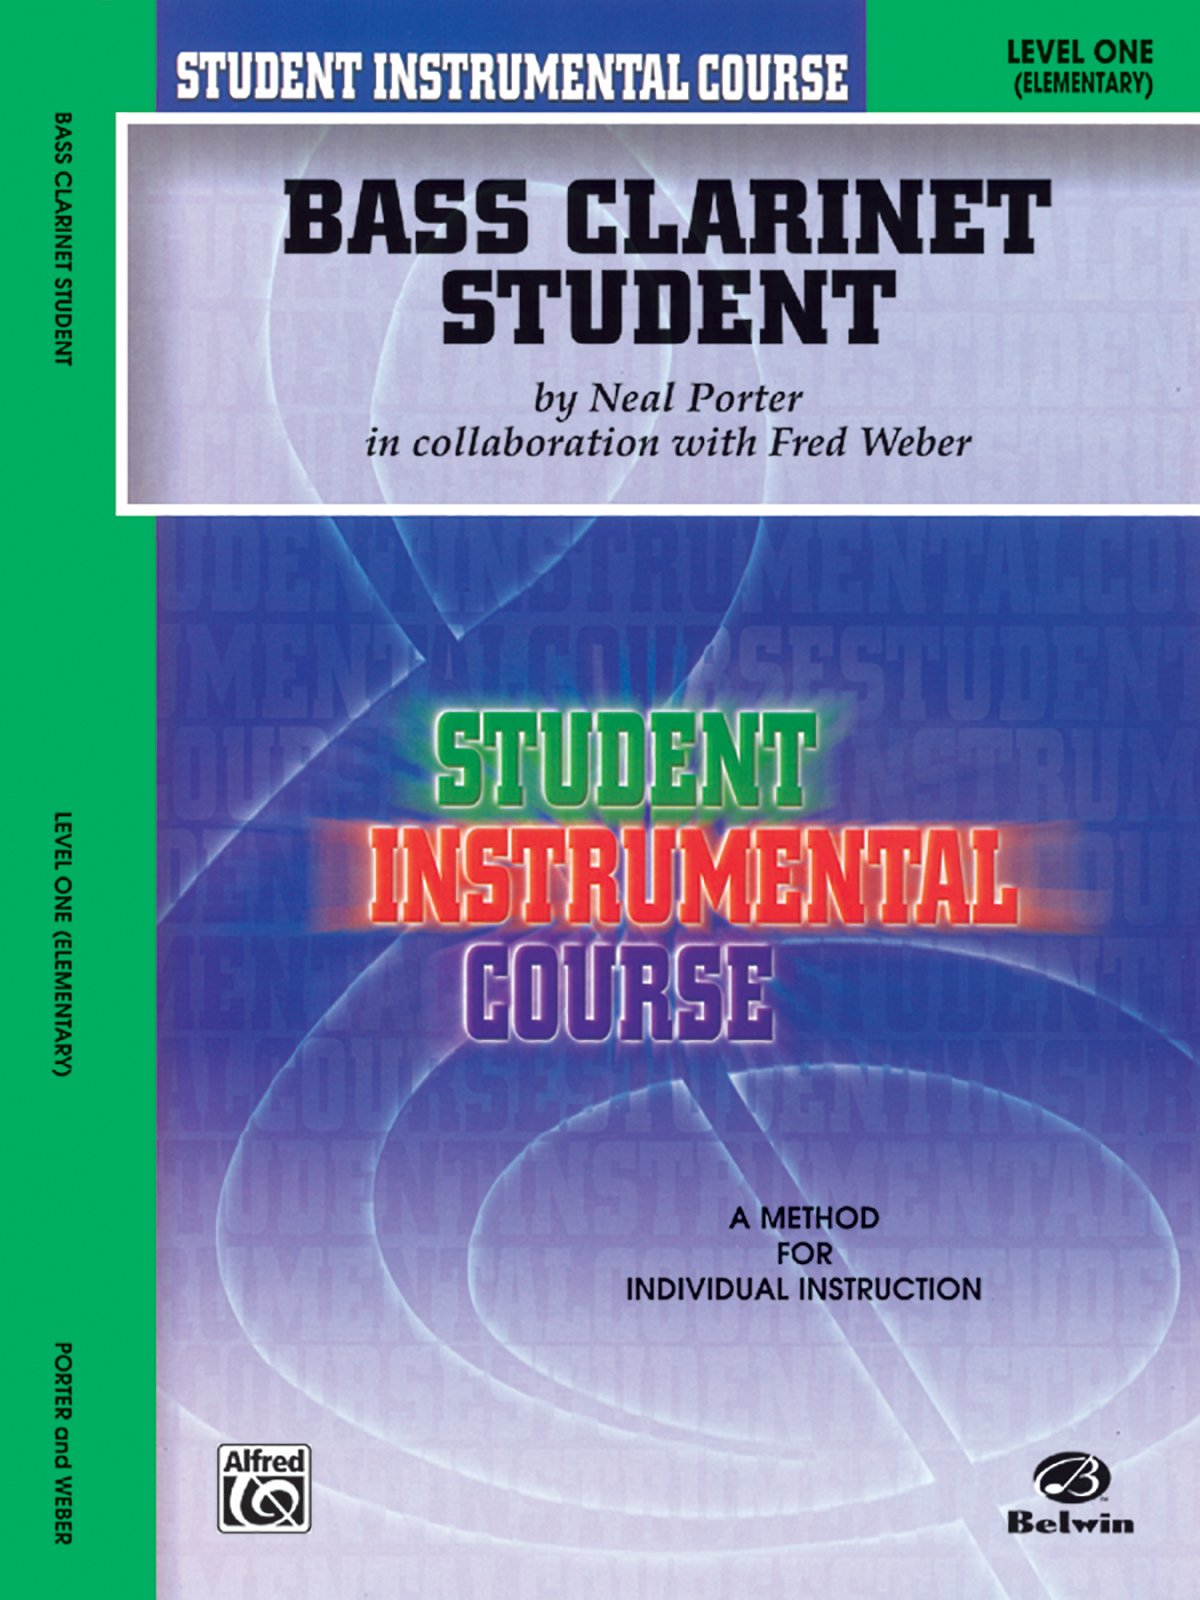 Student Instrumental Course Bass Clarinet Student: Level I ebook